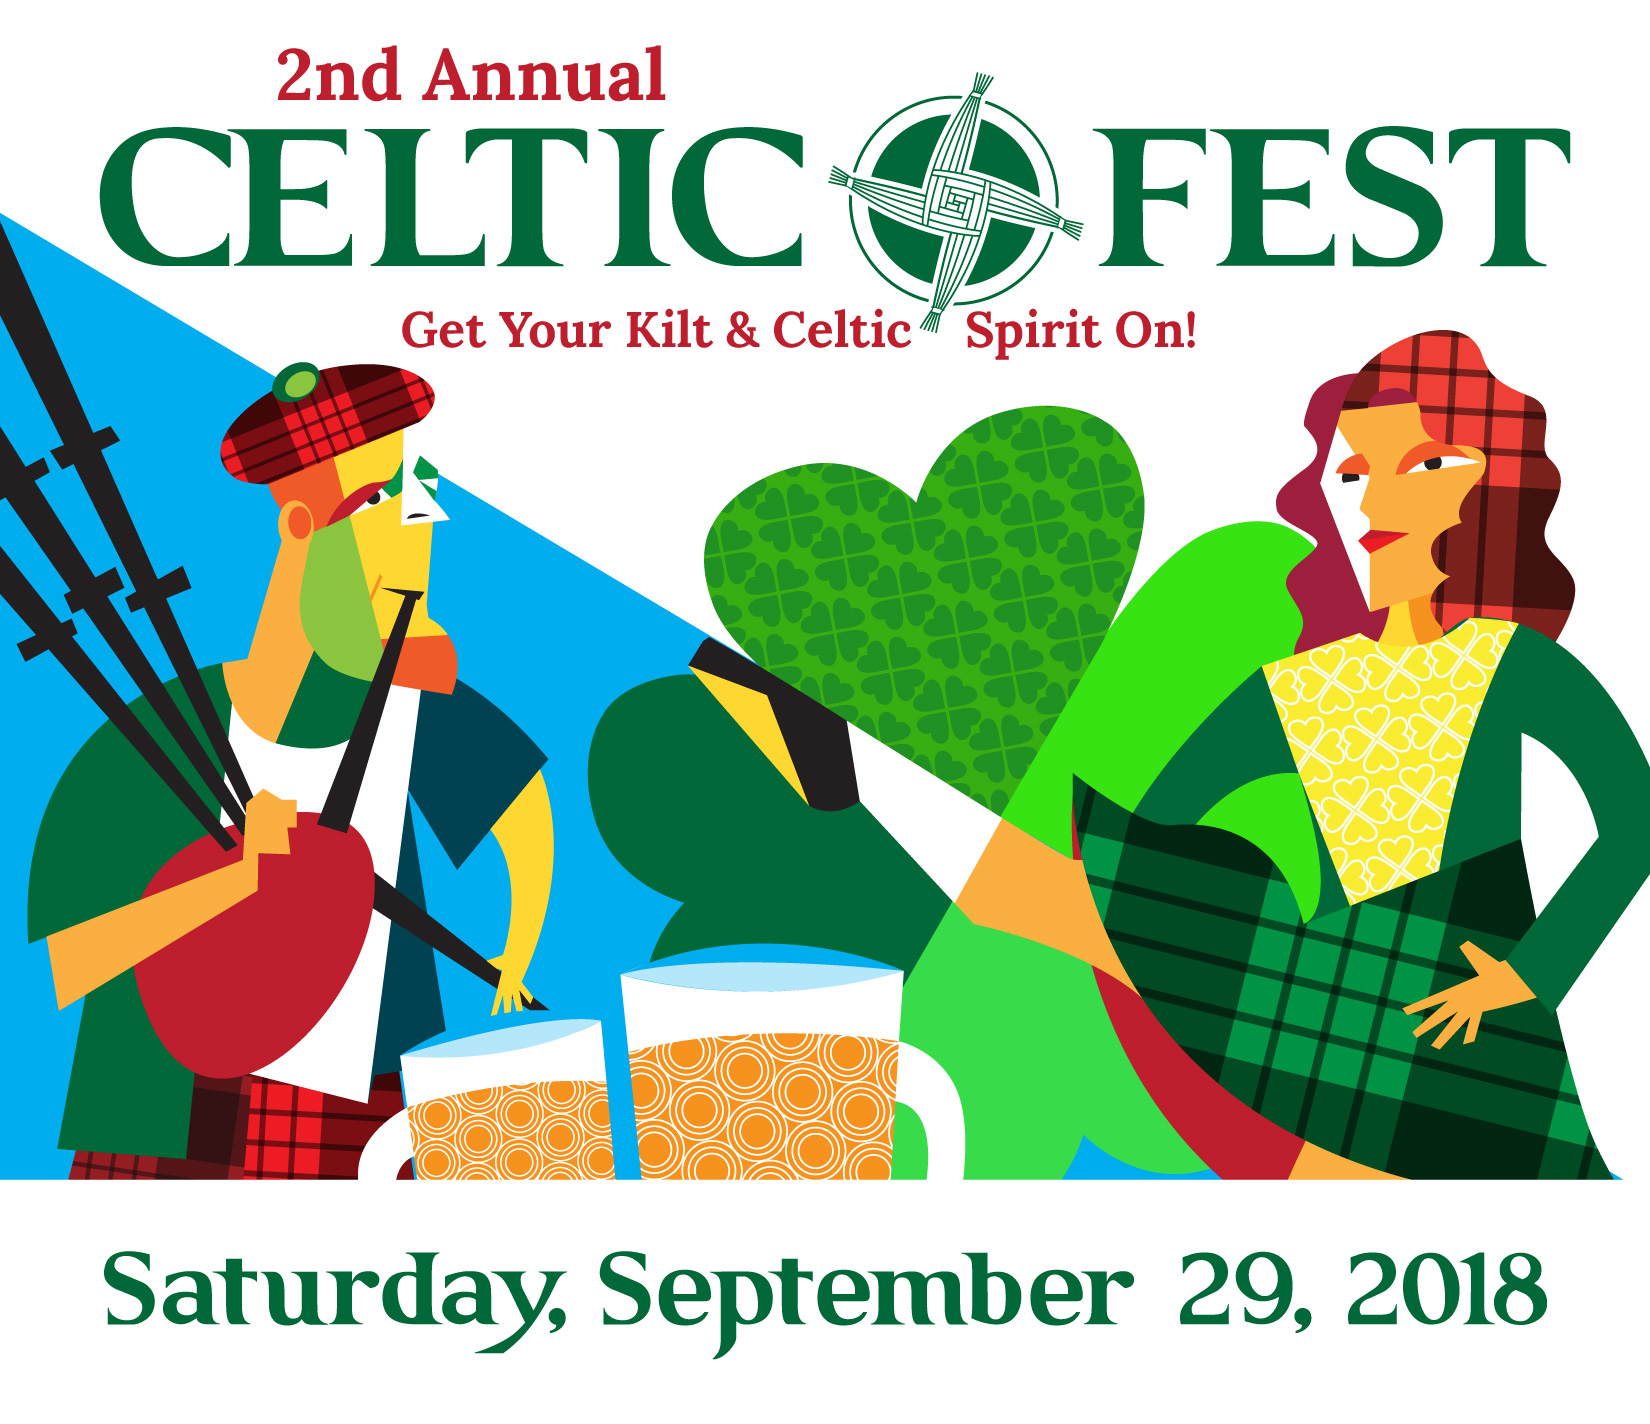 St. Brigit's Celtic Fest Saturday, Sept 9: A Benefit to Feed the Hungry In Carbon Valley